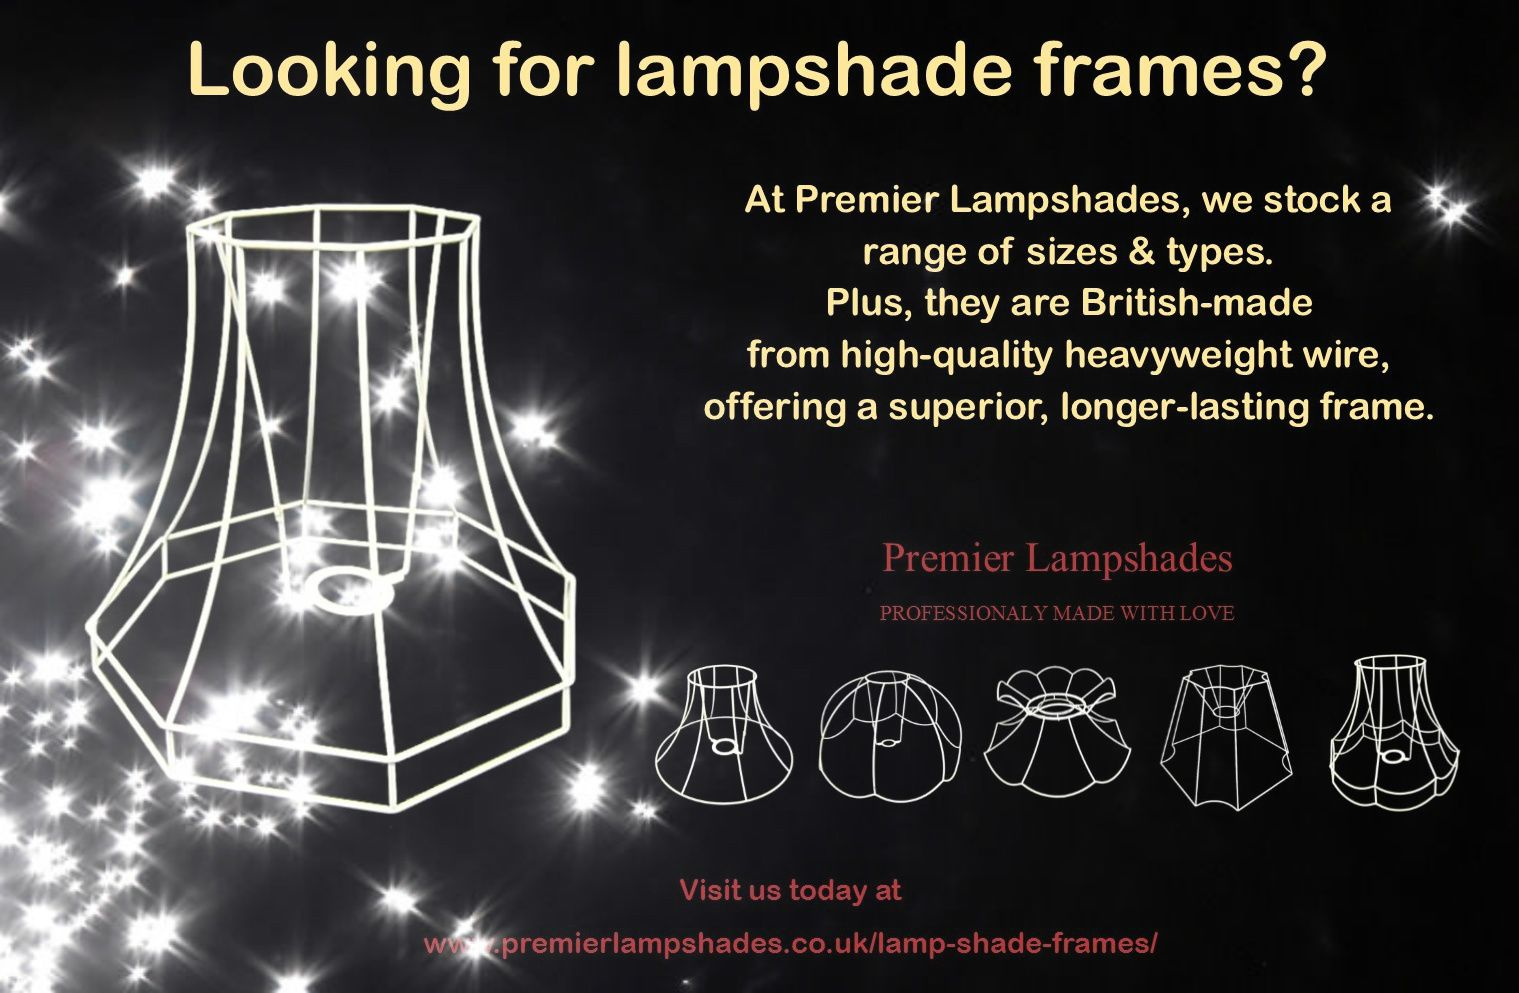 If you are looking for lampshade frames for a new lighting project if you are looking for lampshade frames for a new lighting project we can help greentooth Choice Image